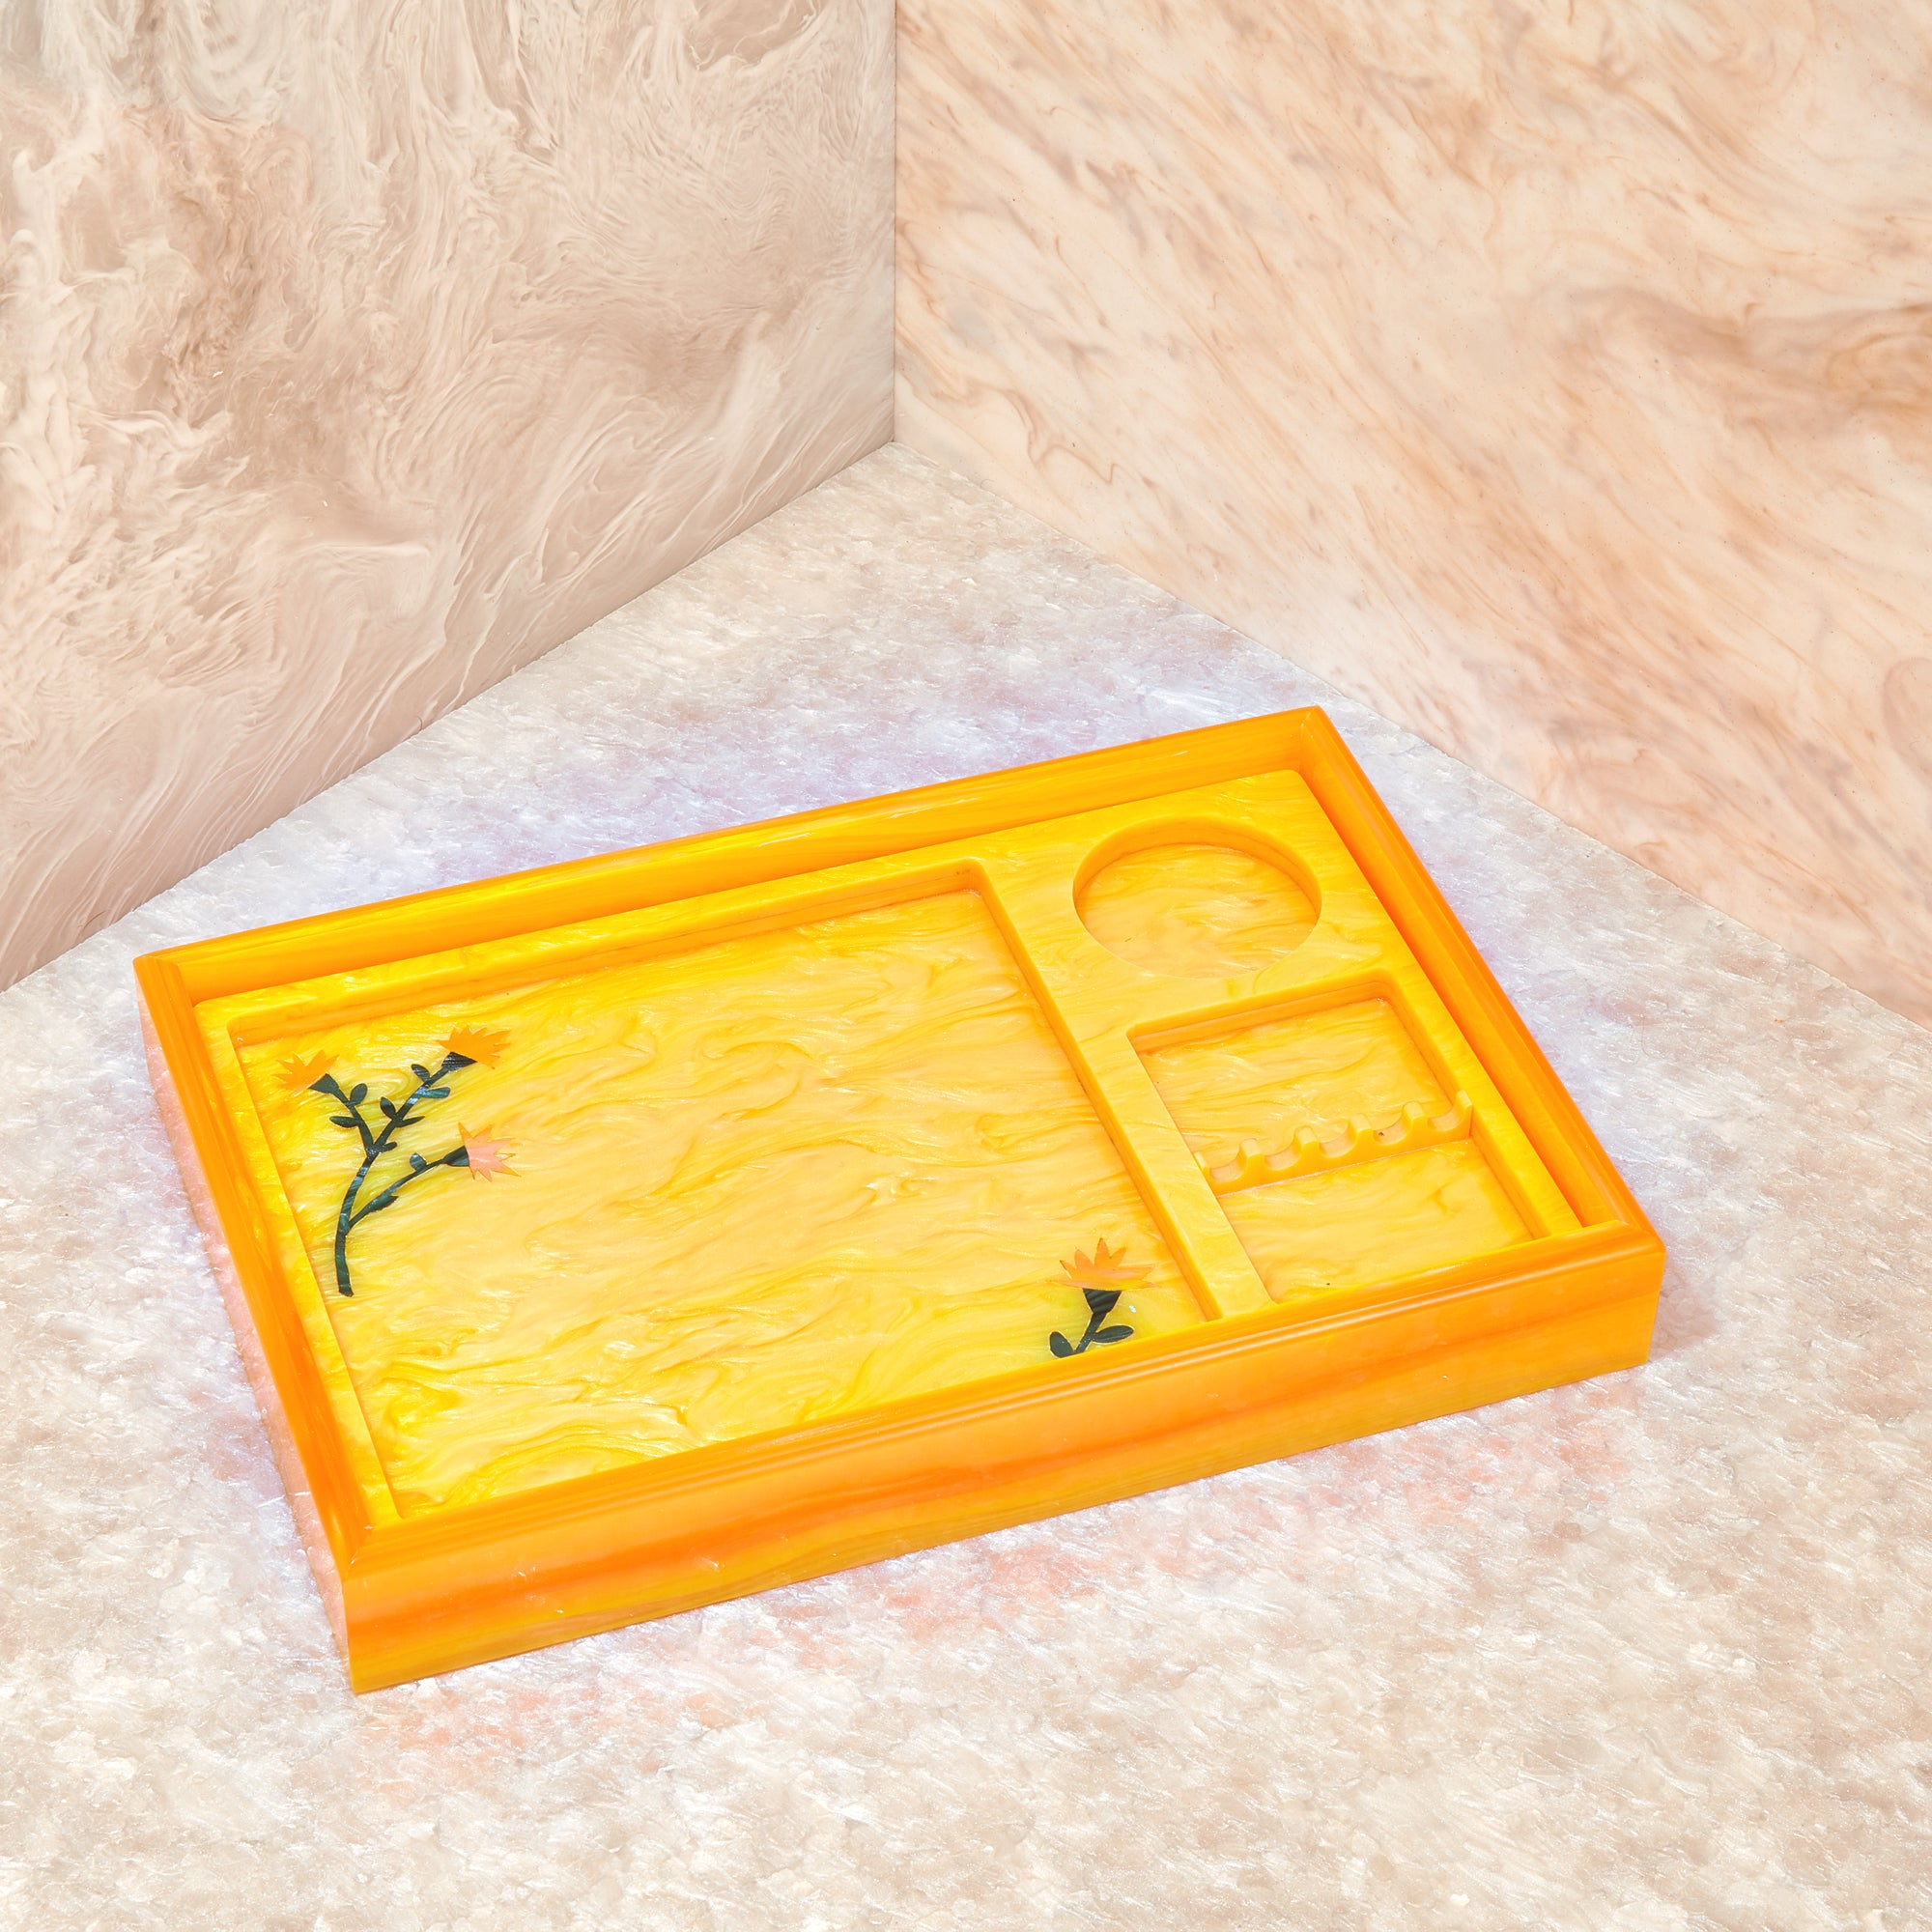 Rolling Tray Insert in Yellow